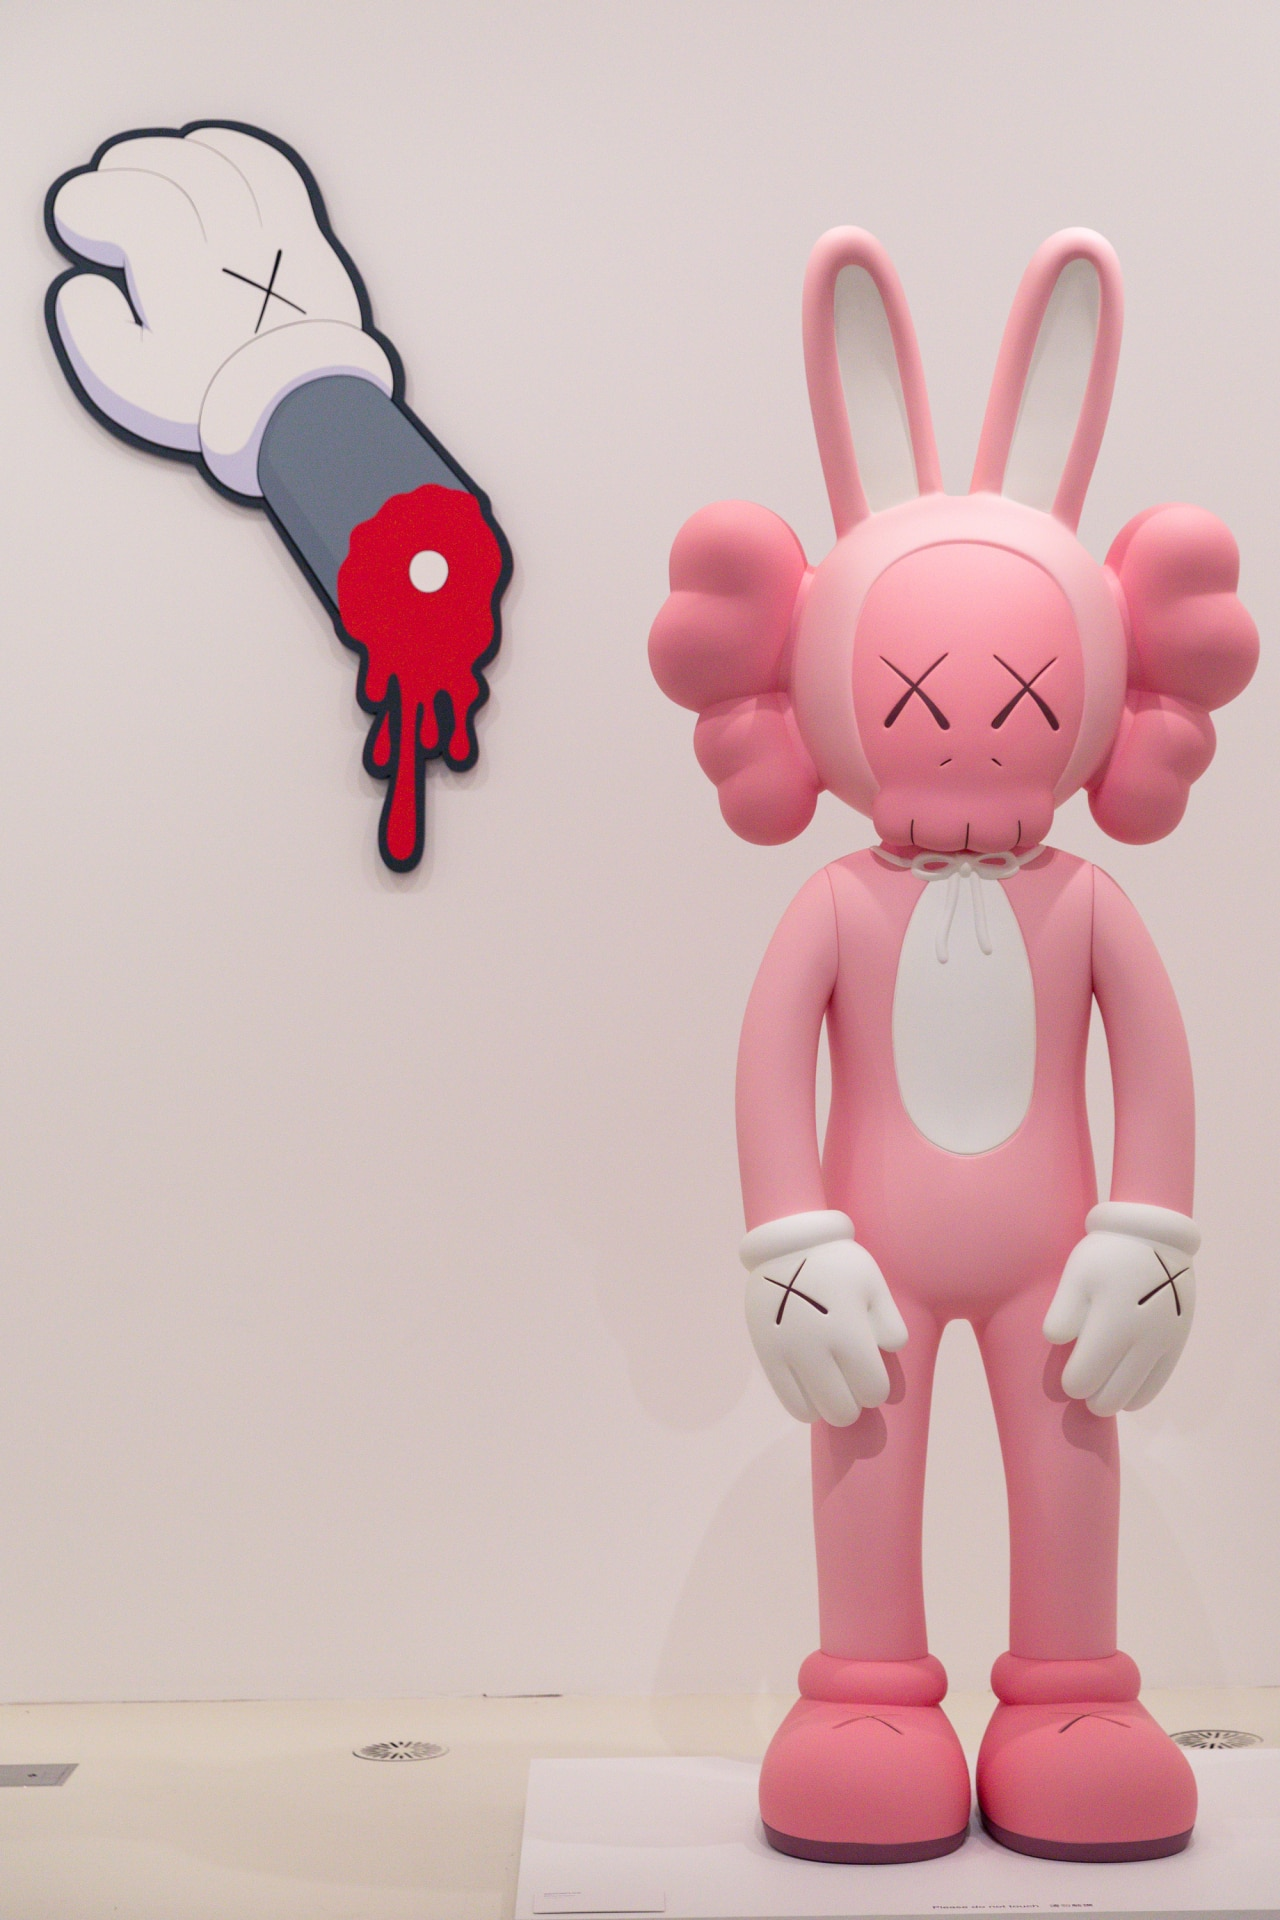 The best street style from the Kaws opening night at the National Gallery of Victoria